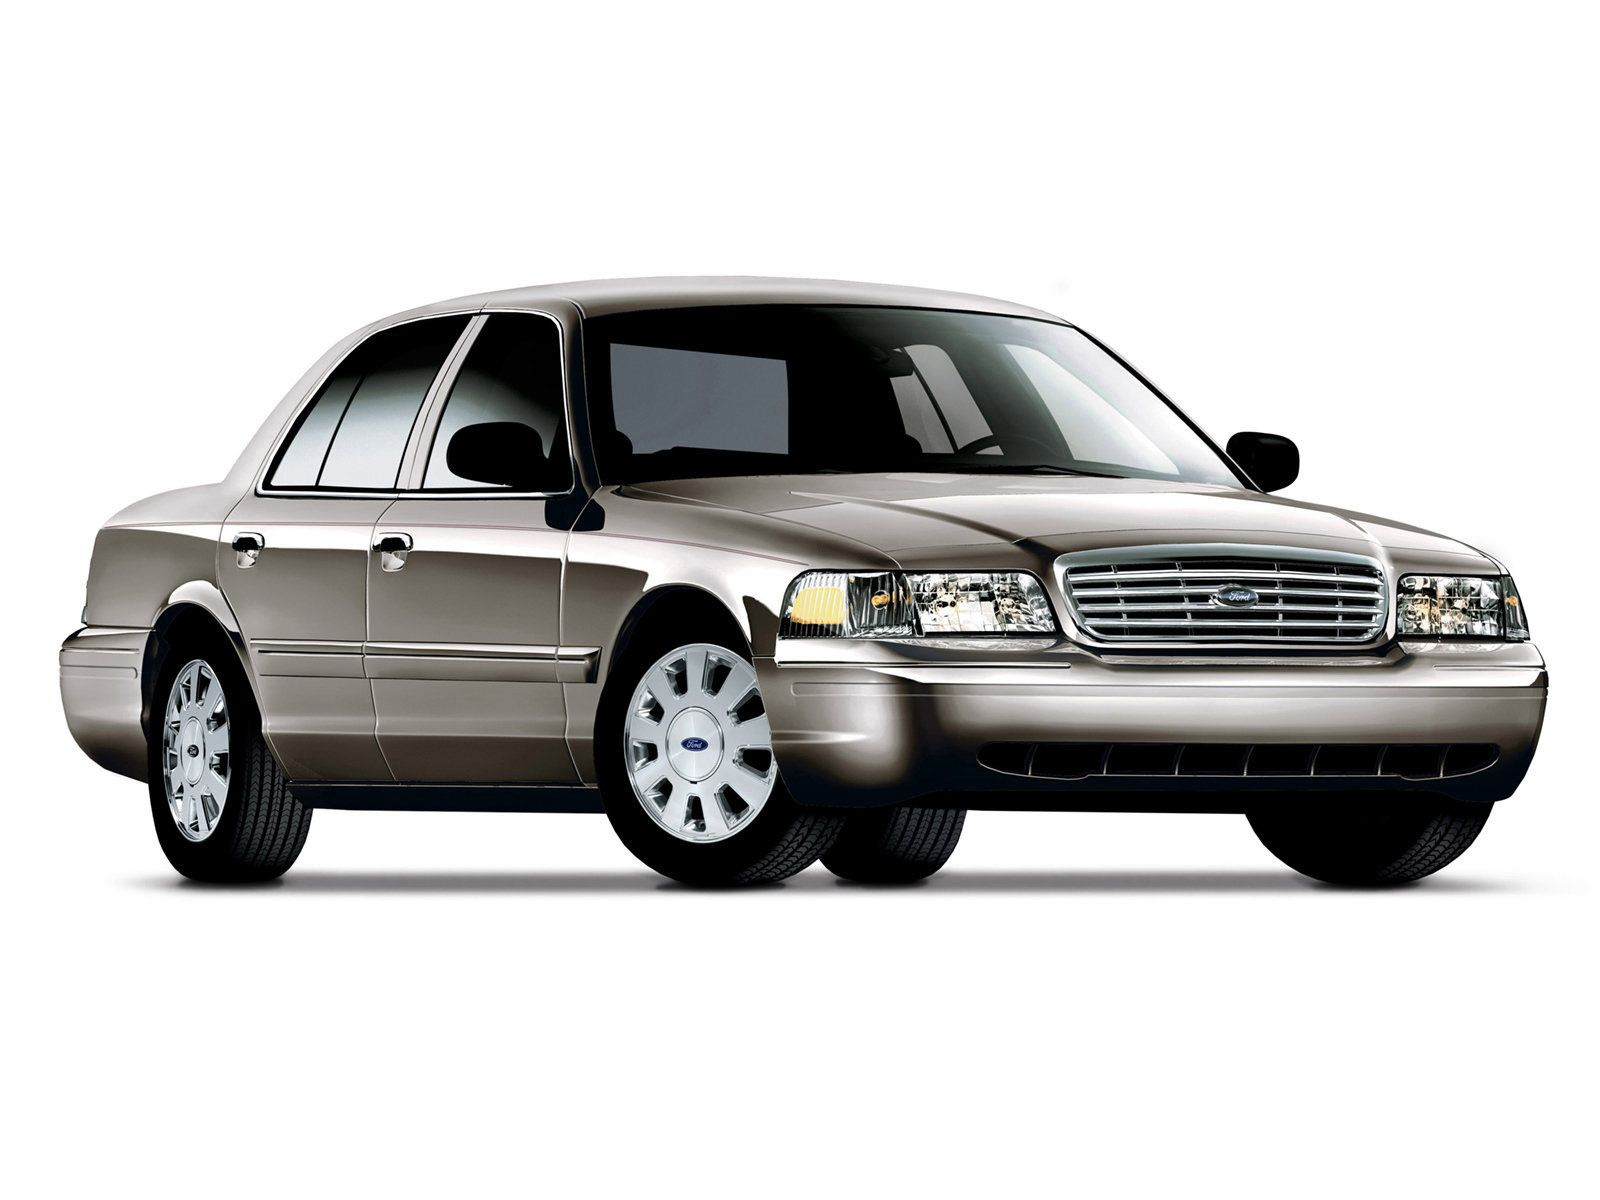 Ford Crown Victoria I Owned A Used One From   Terrible Mileage Great Power